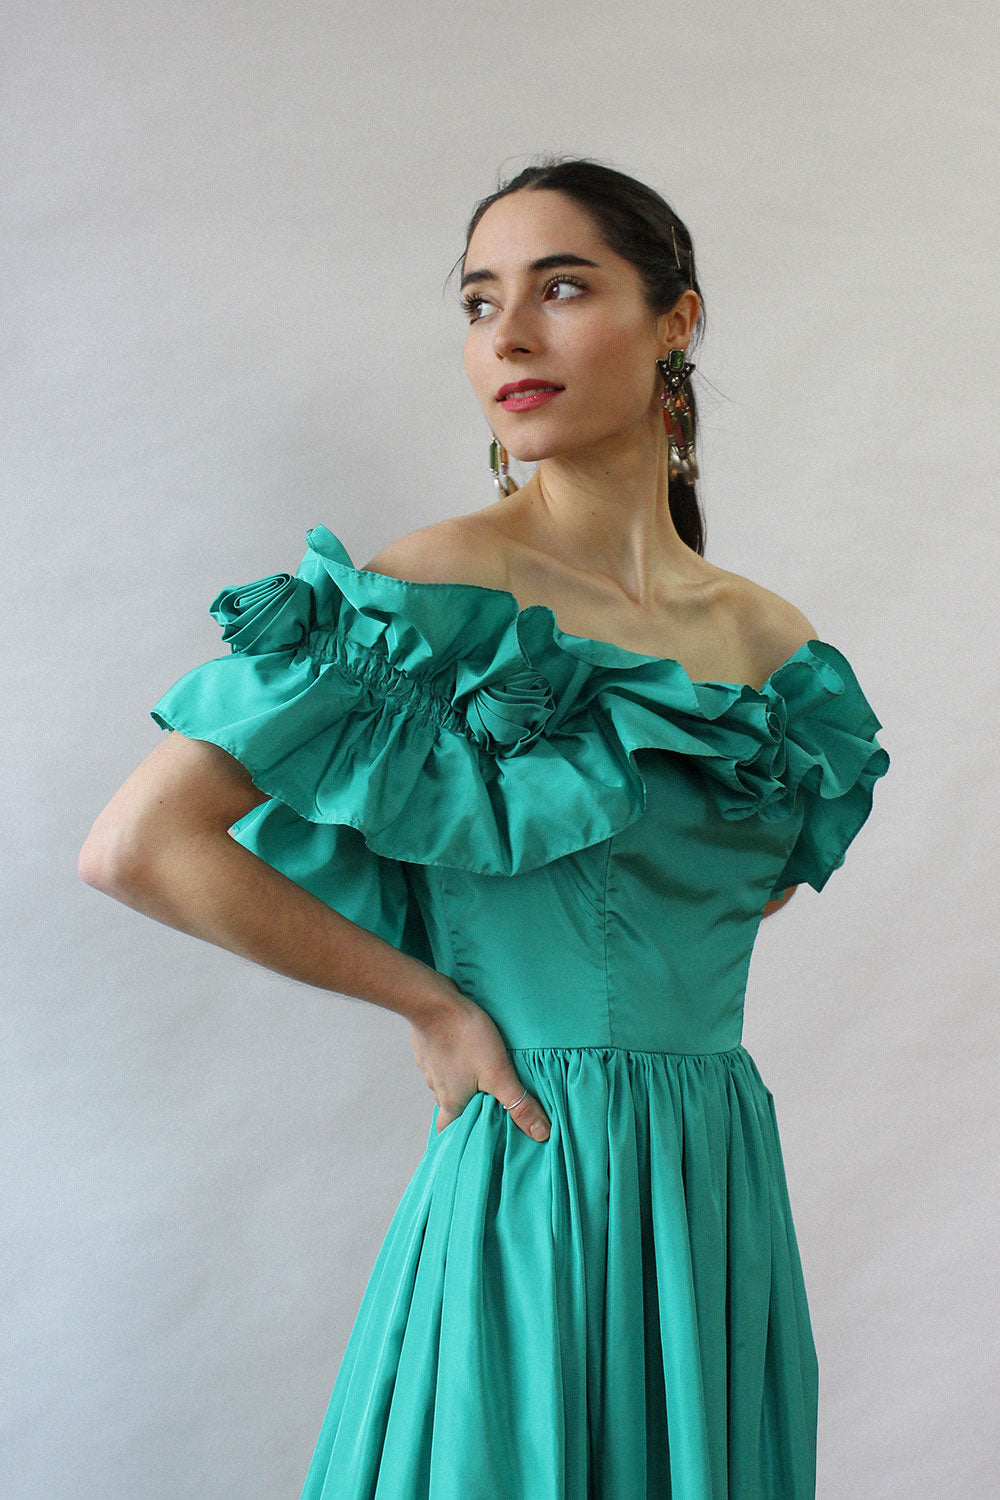 Spring is in the Air Taffeta Dress S